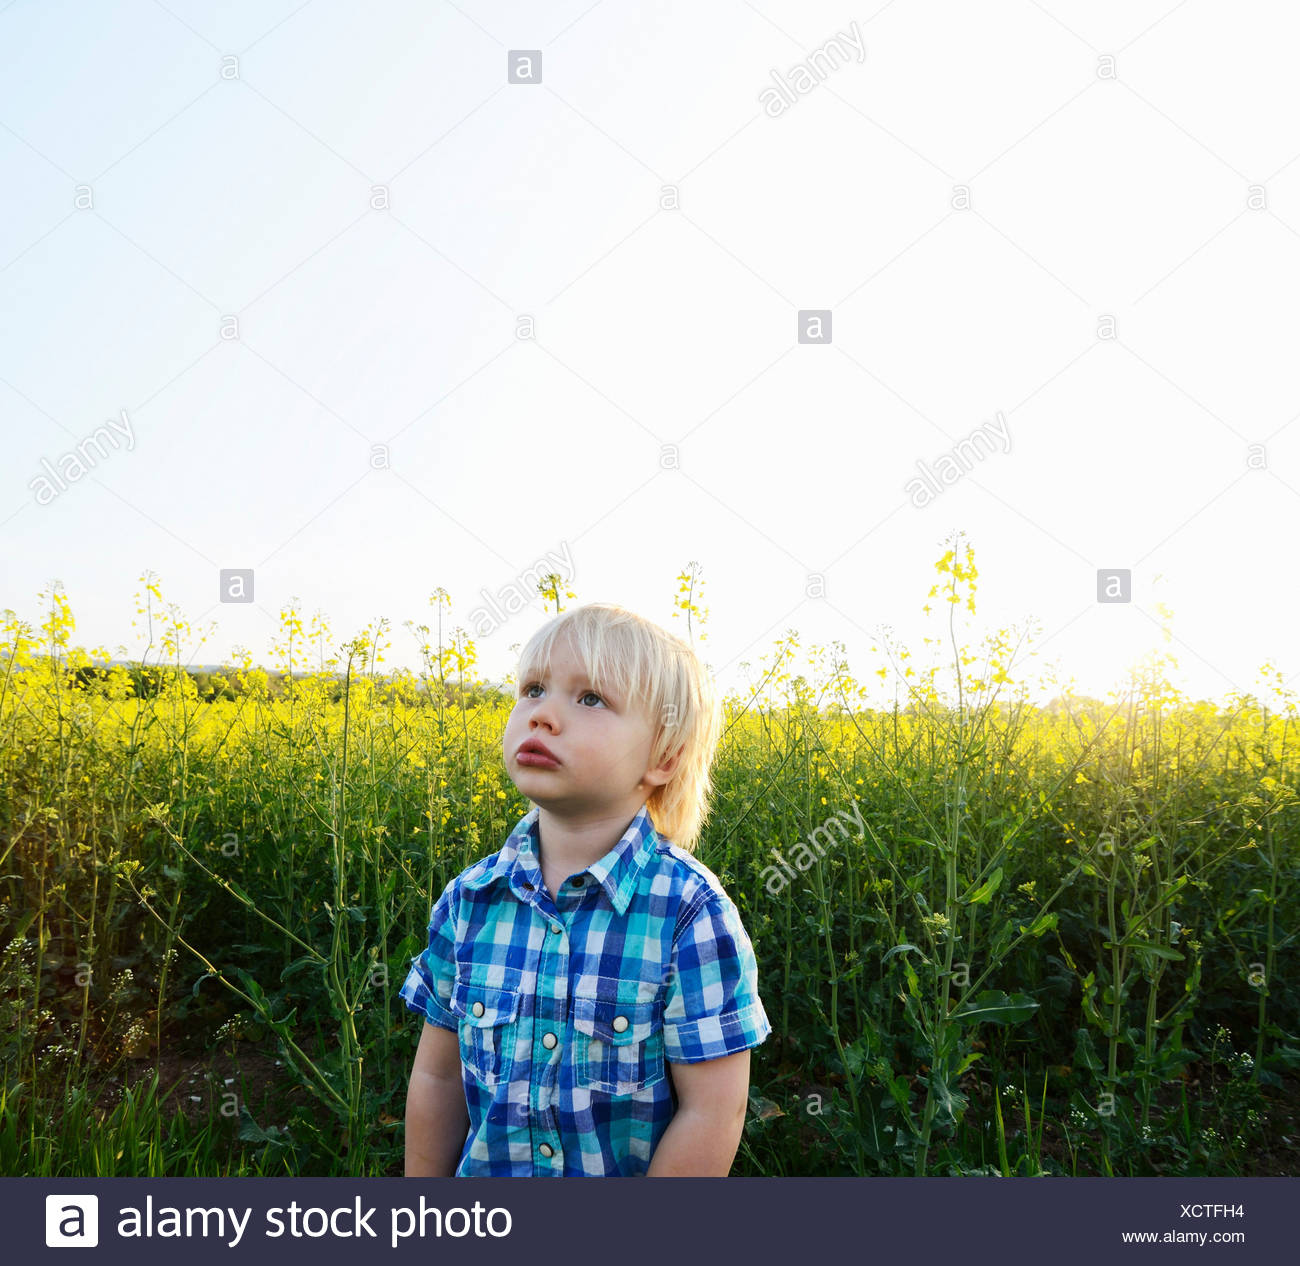 Boy standing in field and looking up - Stock Image